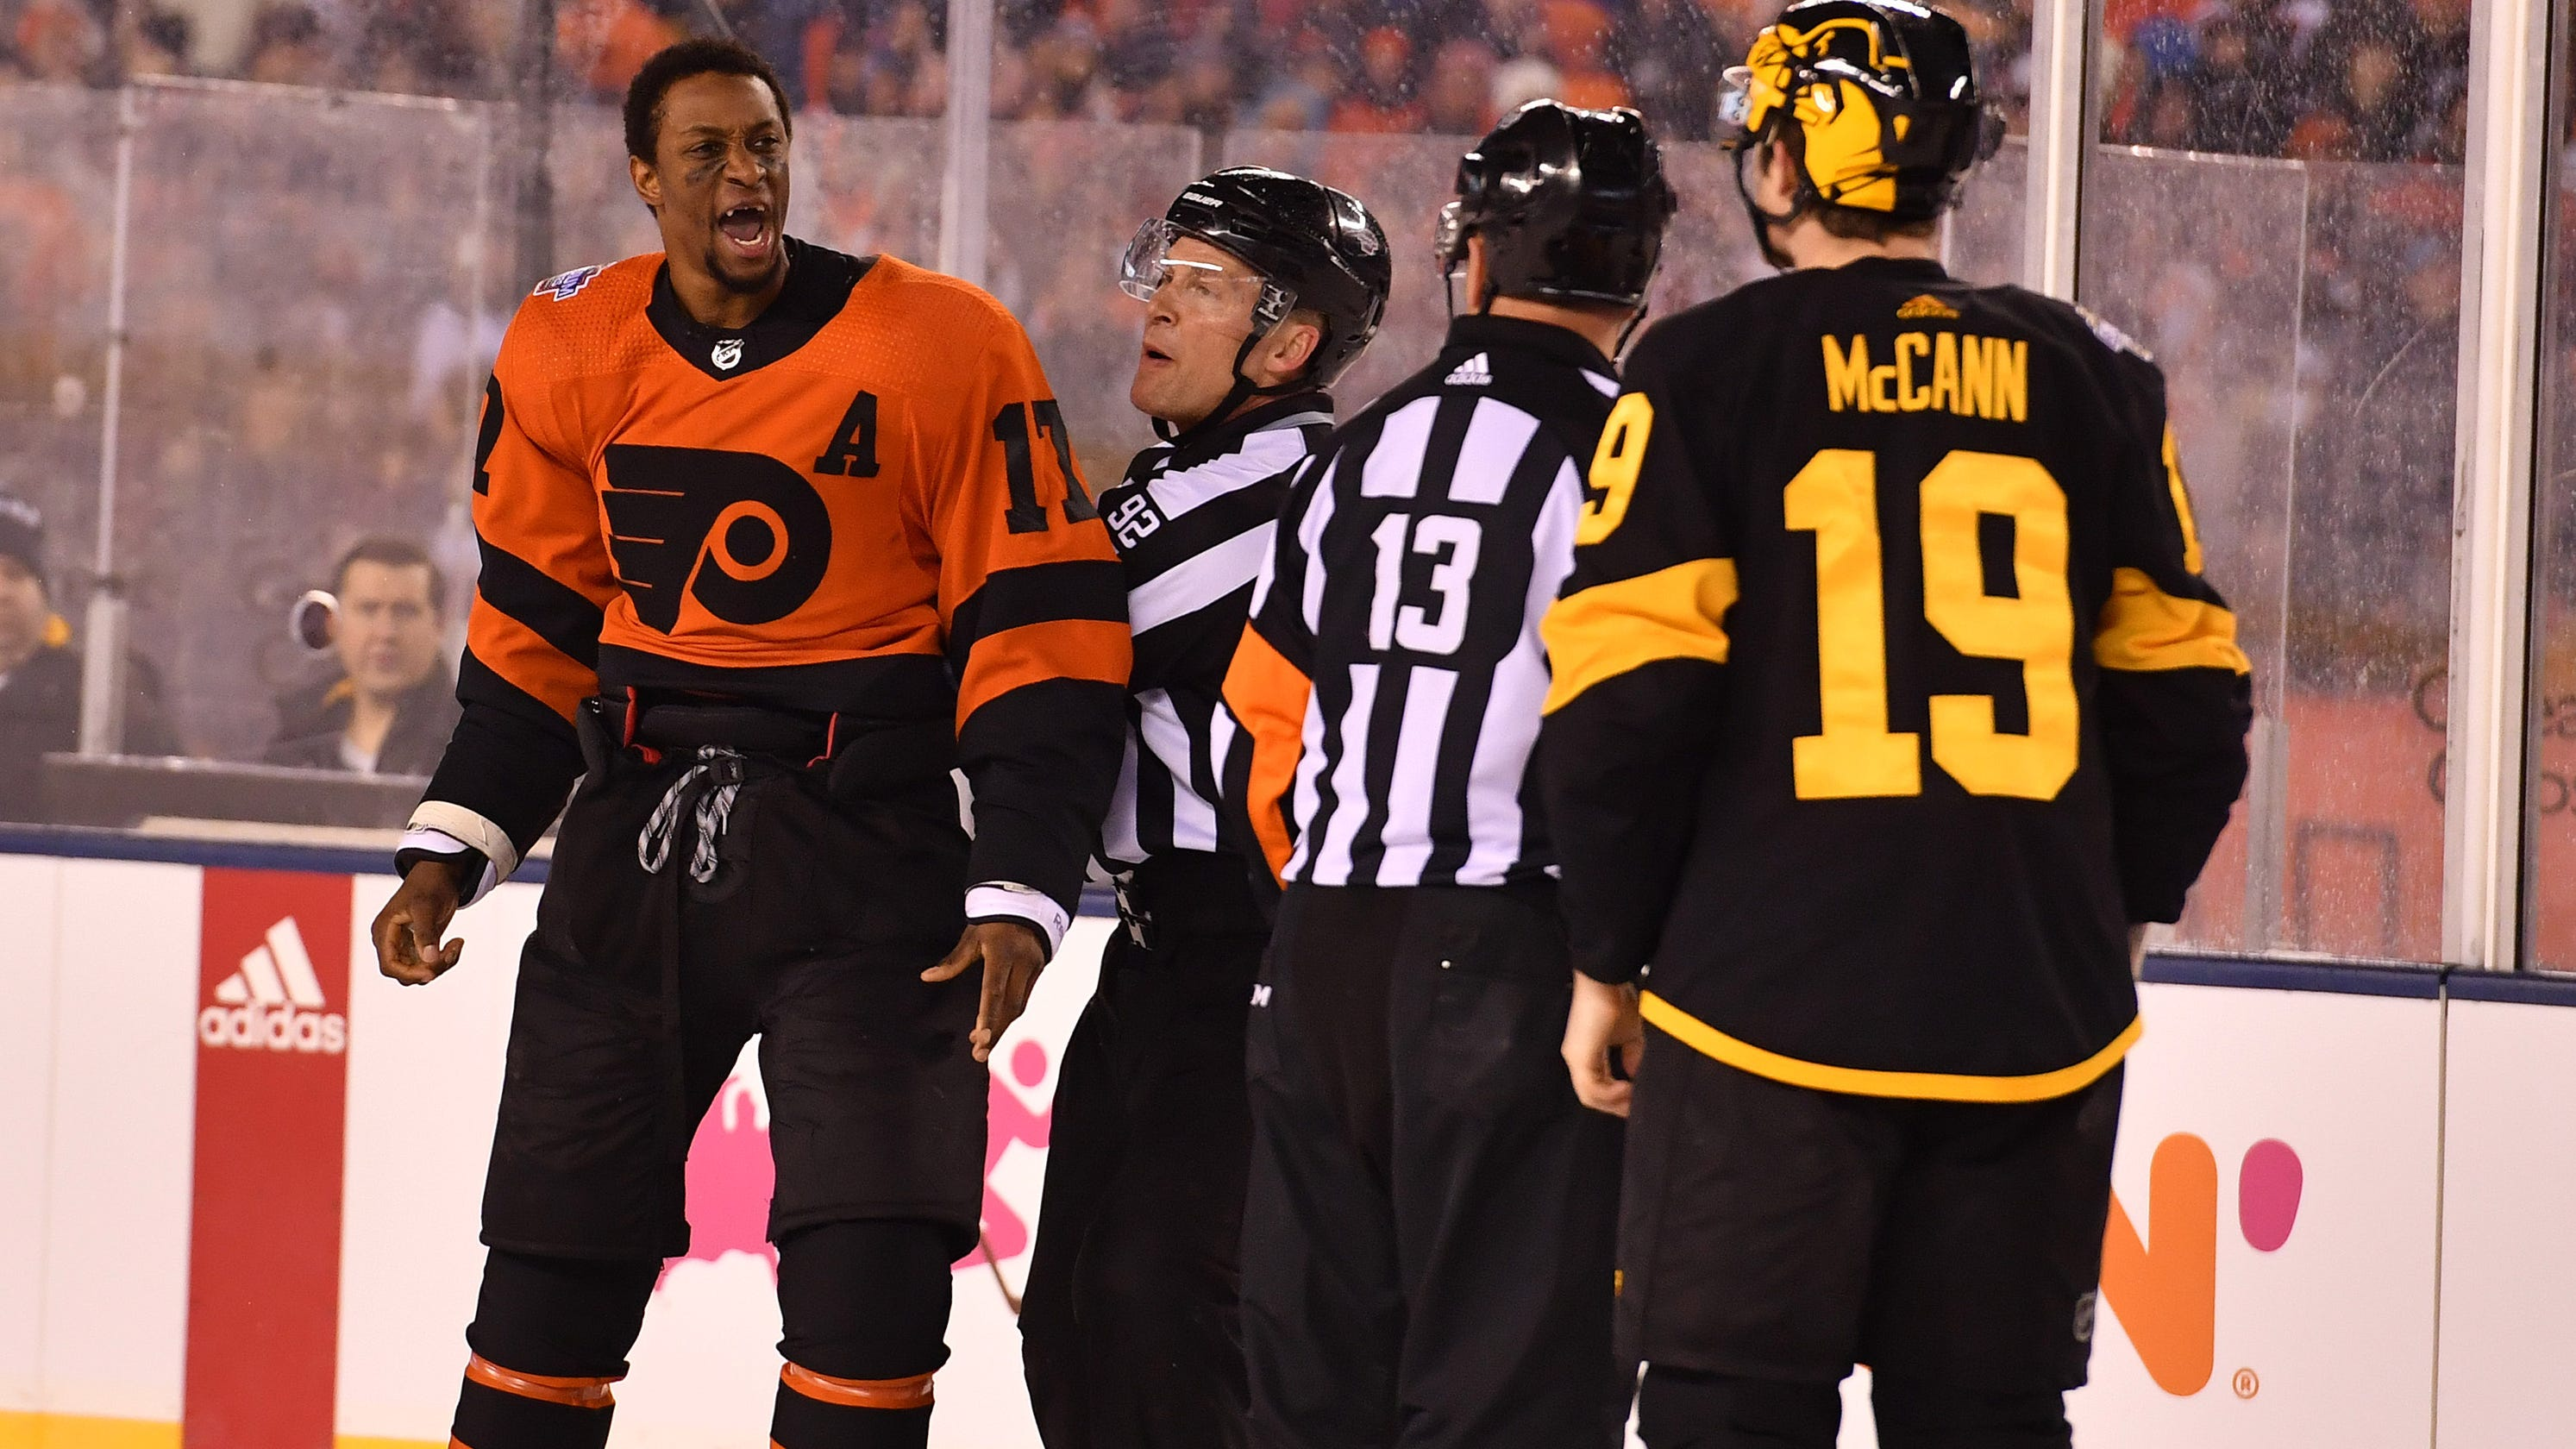 separation shoes 6e81e 21c73 Predators: Wayne Simmonds gets familiar with Nashville teammates